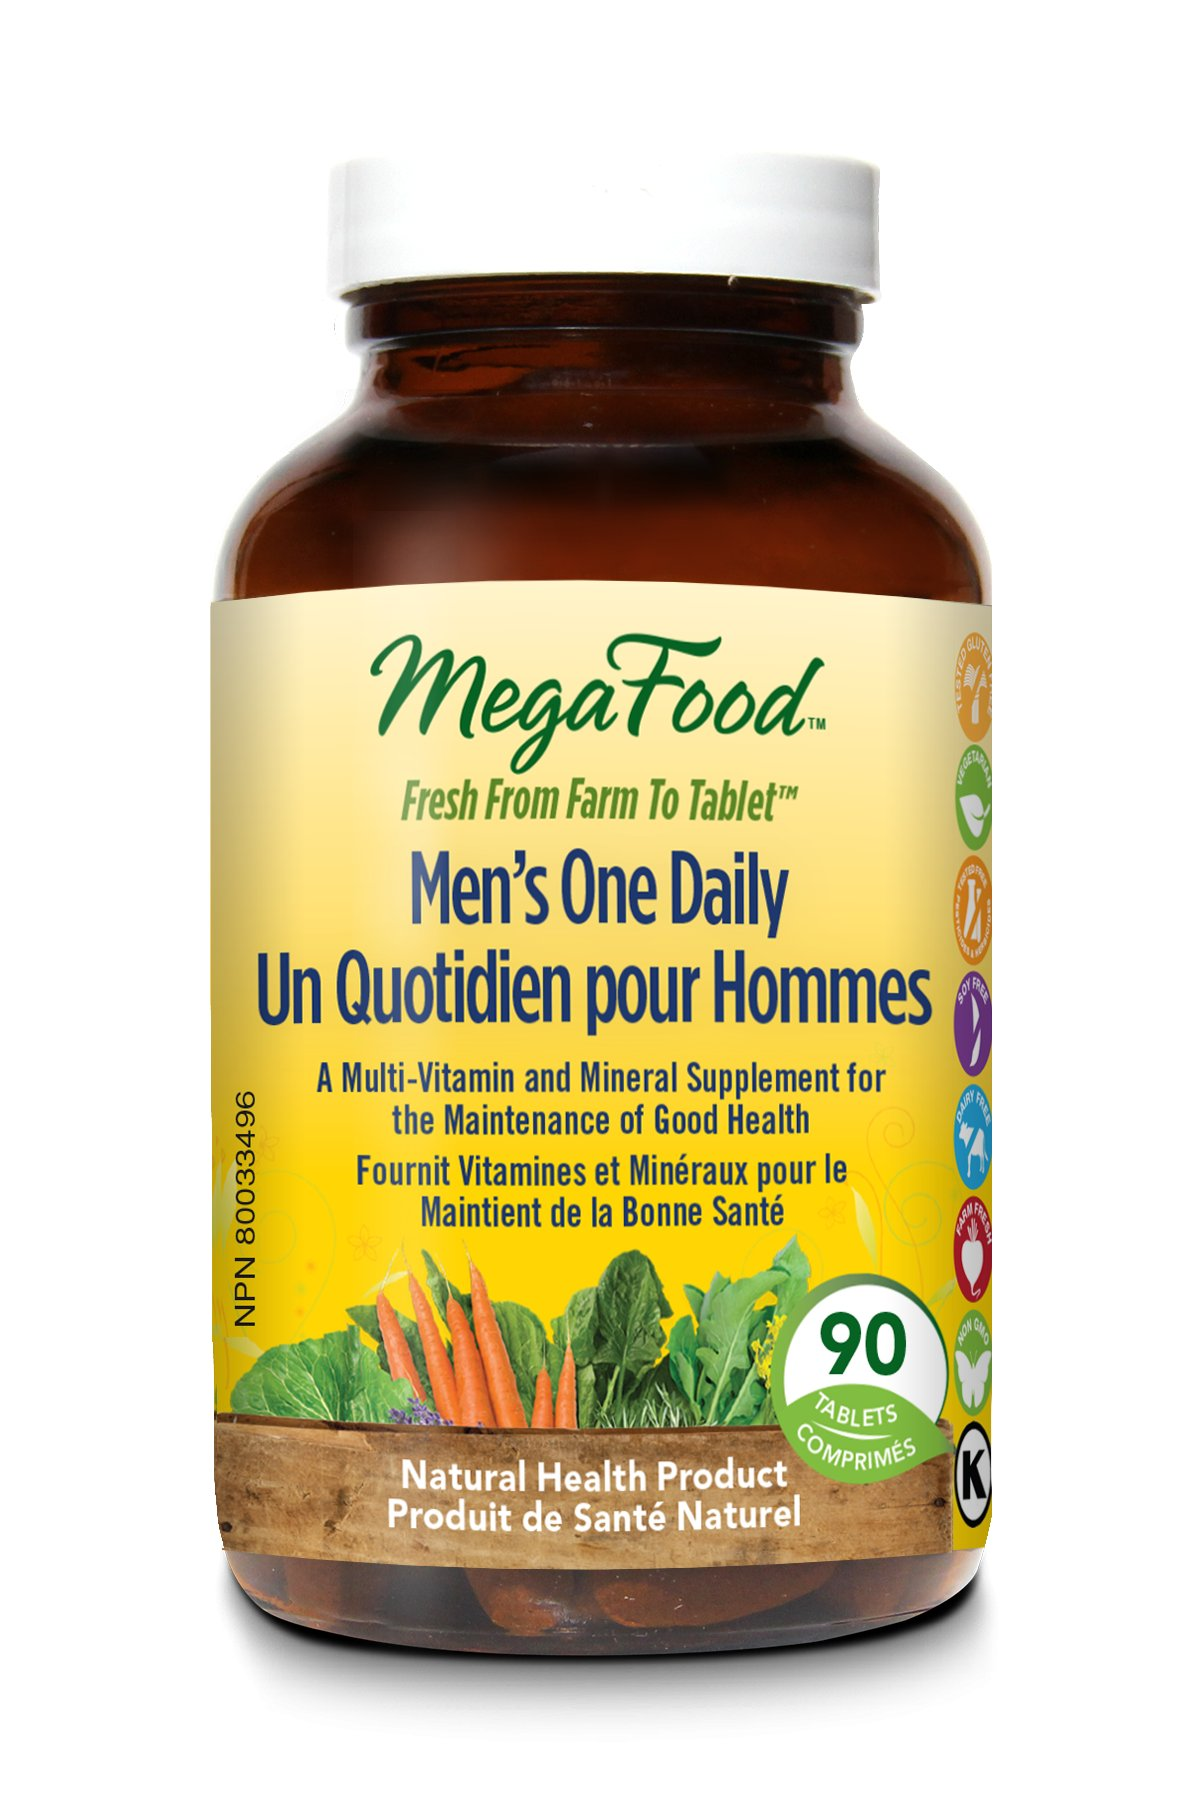 MegaFood Men's Once Daily Gives Men All The Nutritional Value They Need Before They Get Older